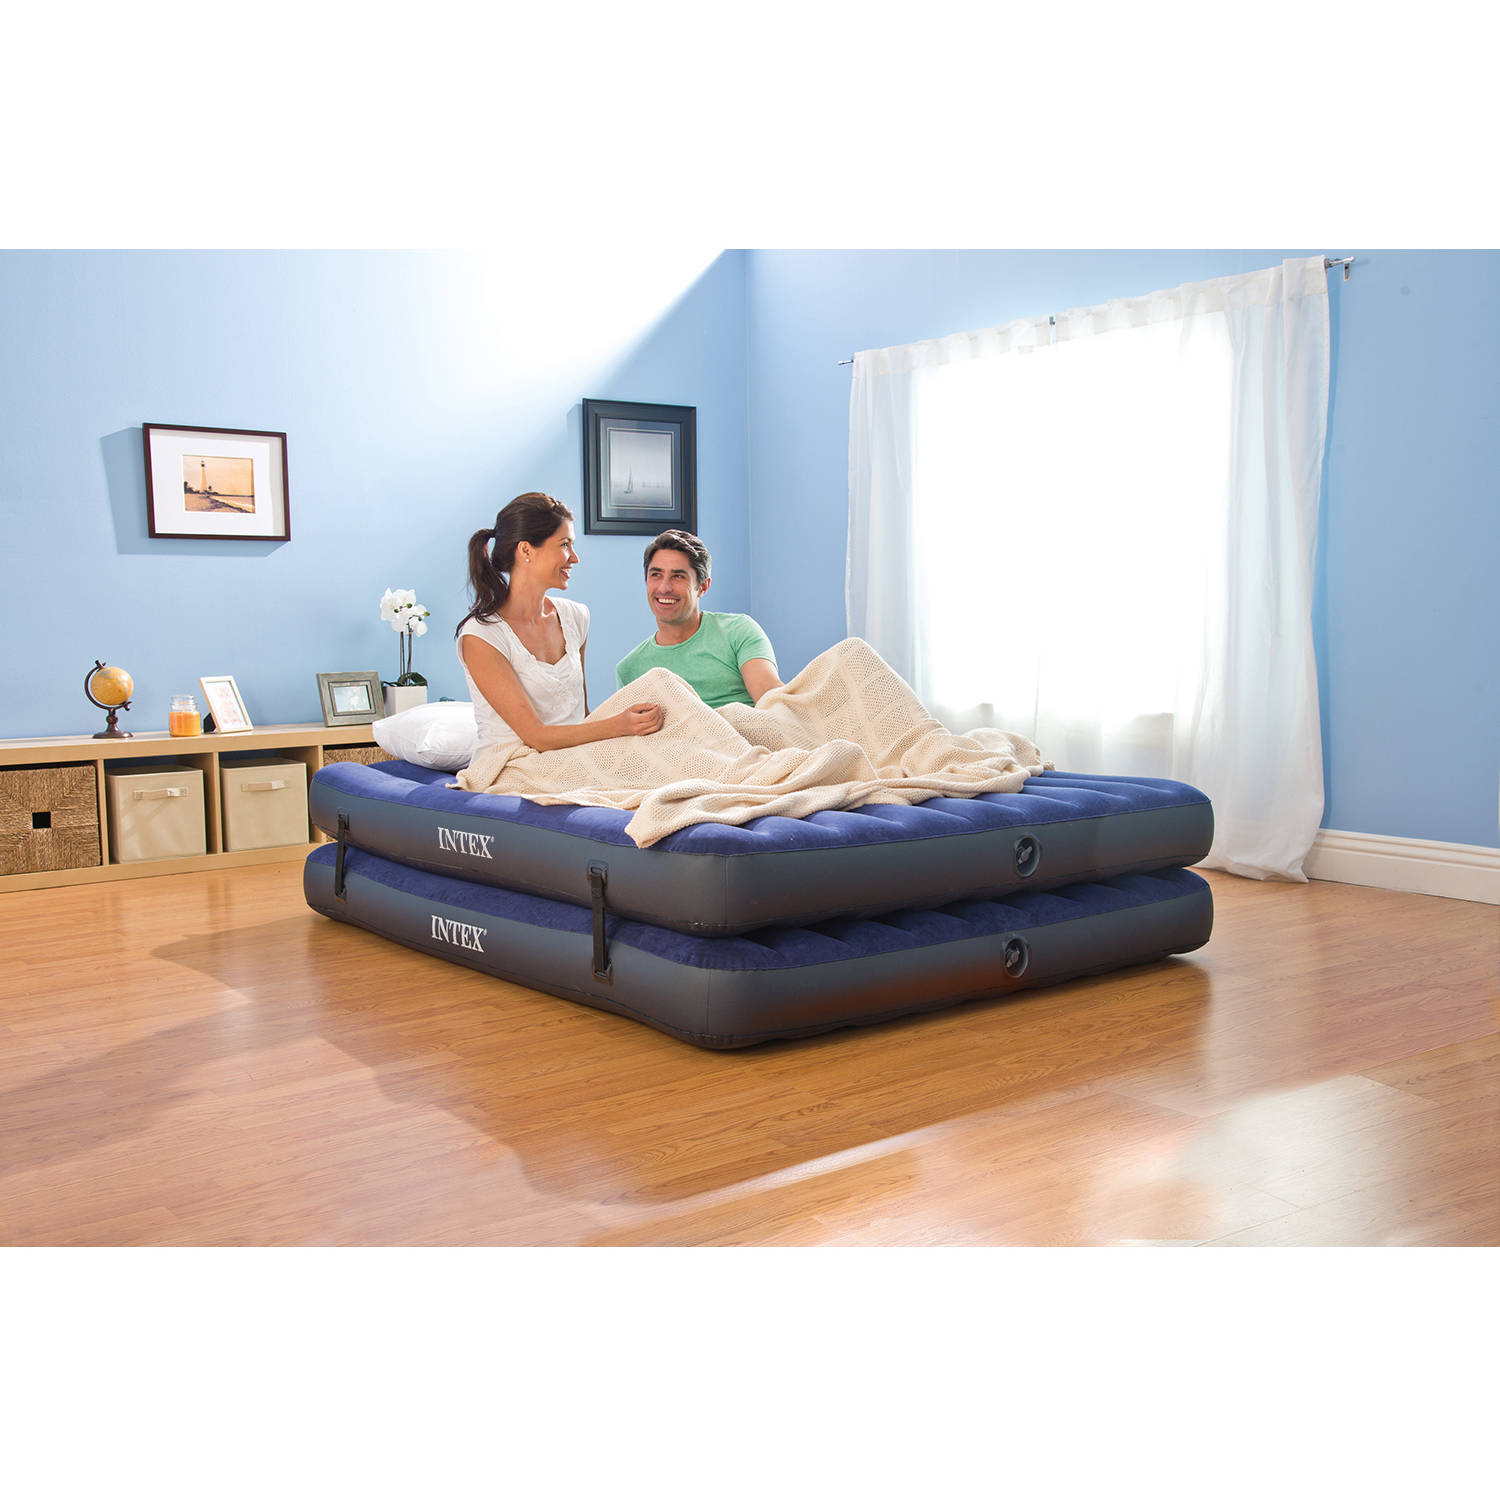 walmart air mattress prices Intex Queen 2 in 1 Guest Airbed Mattress with Hand Pump   Walmart.com walmart air mattress prices